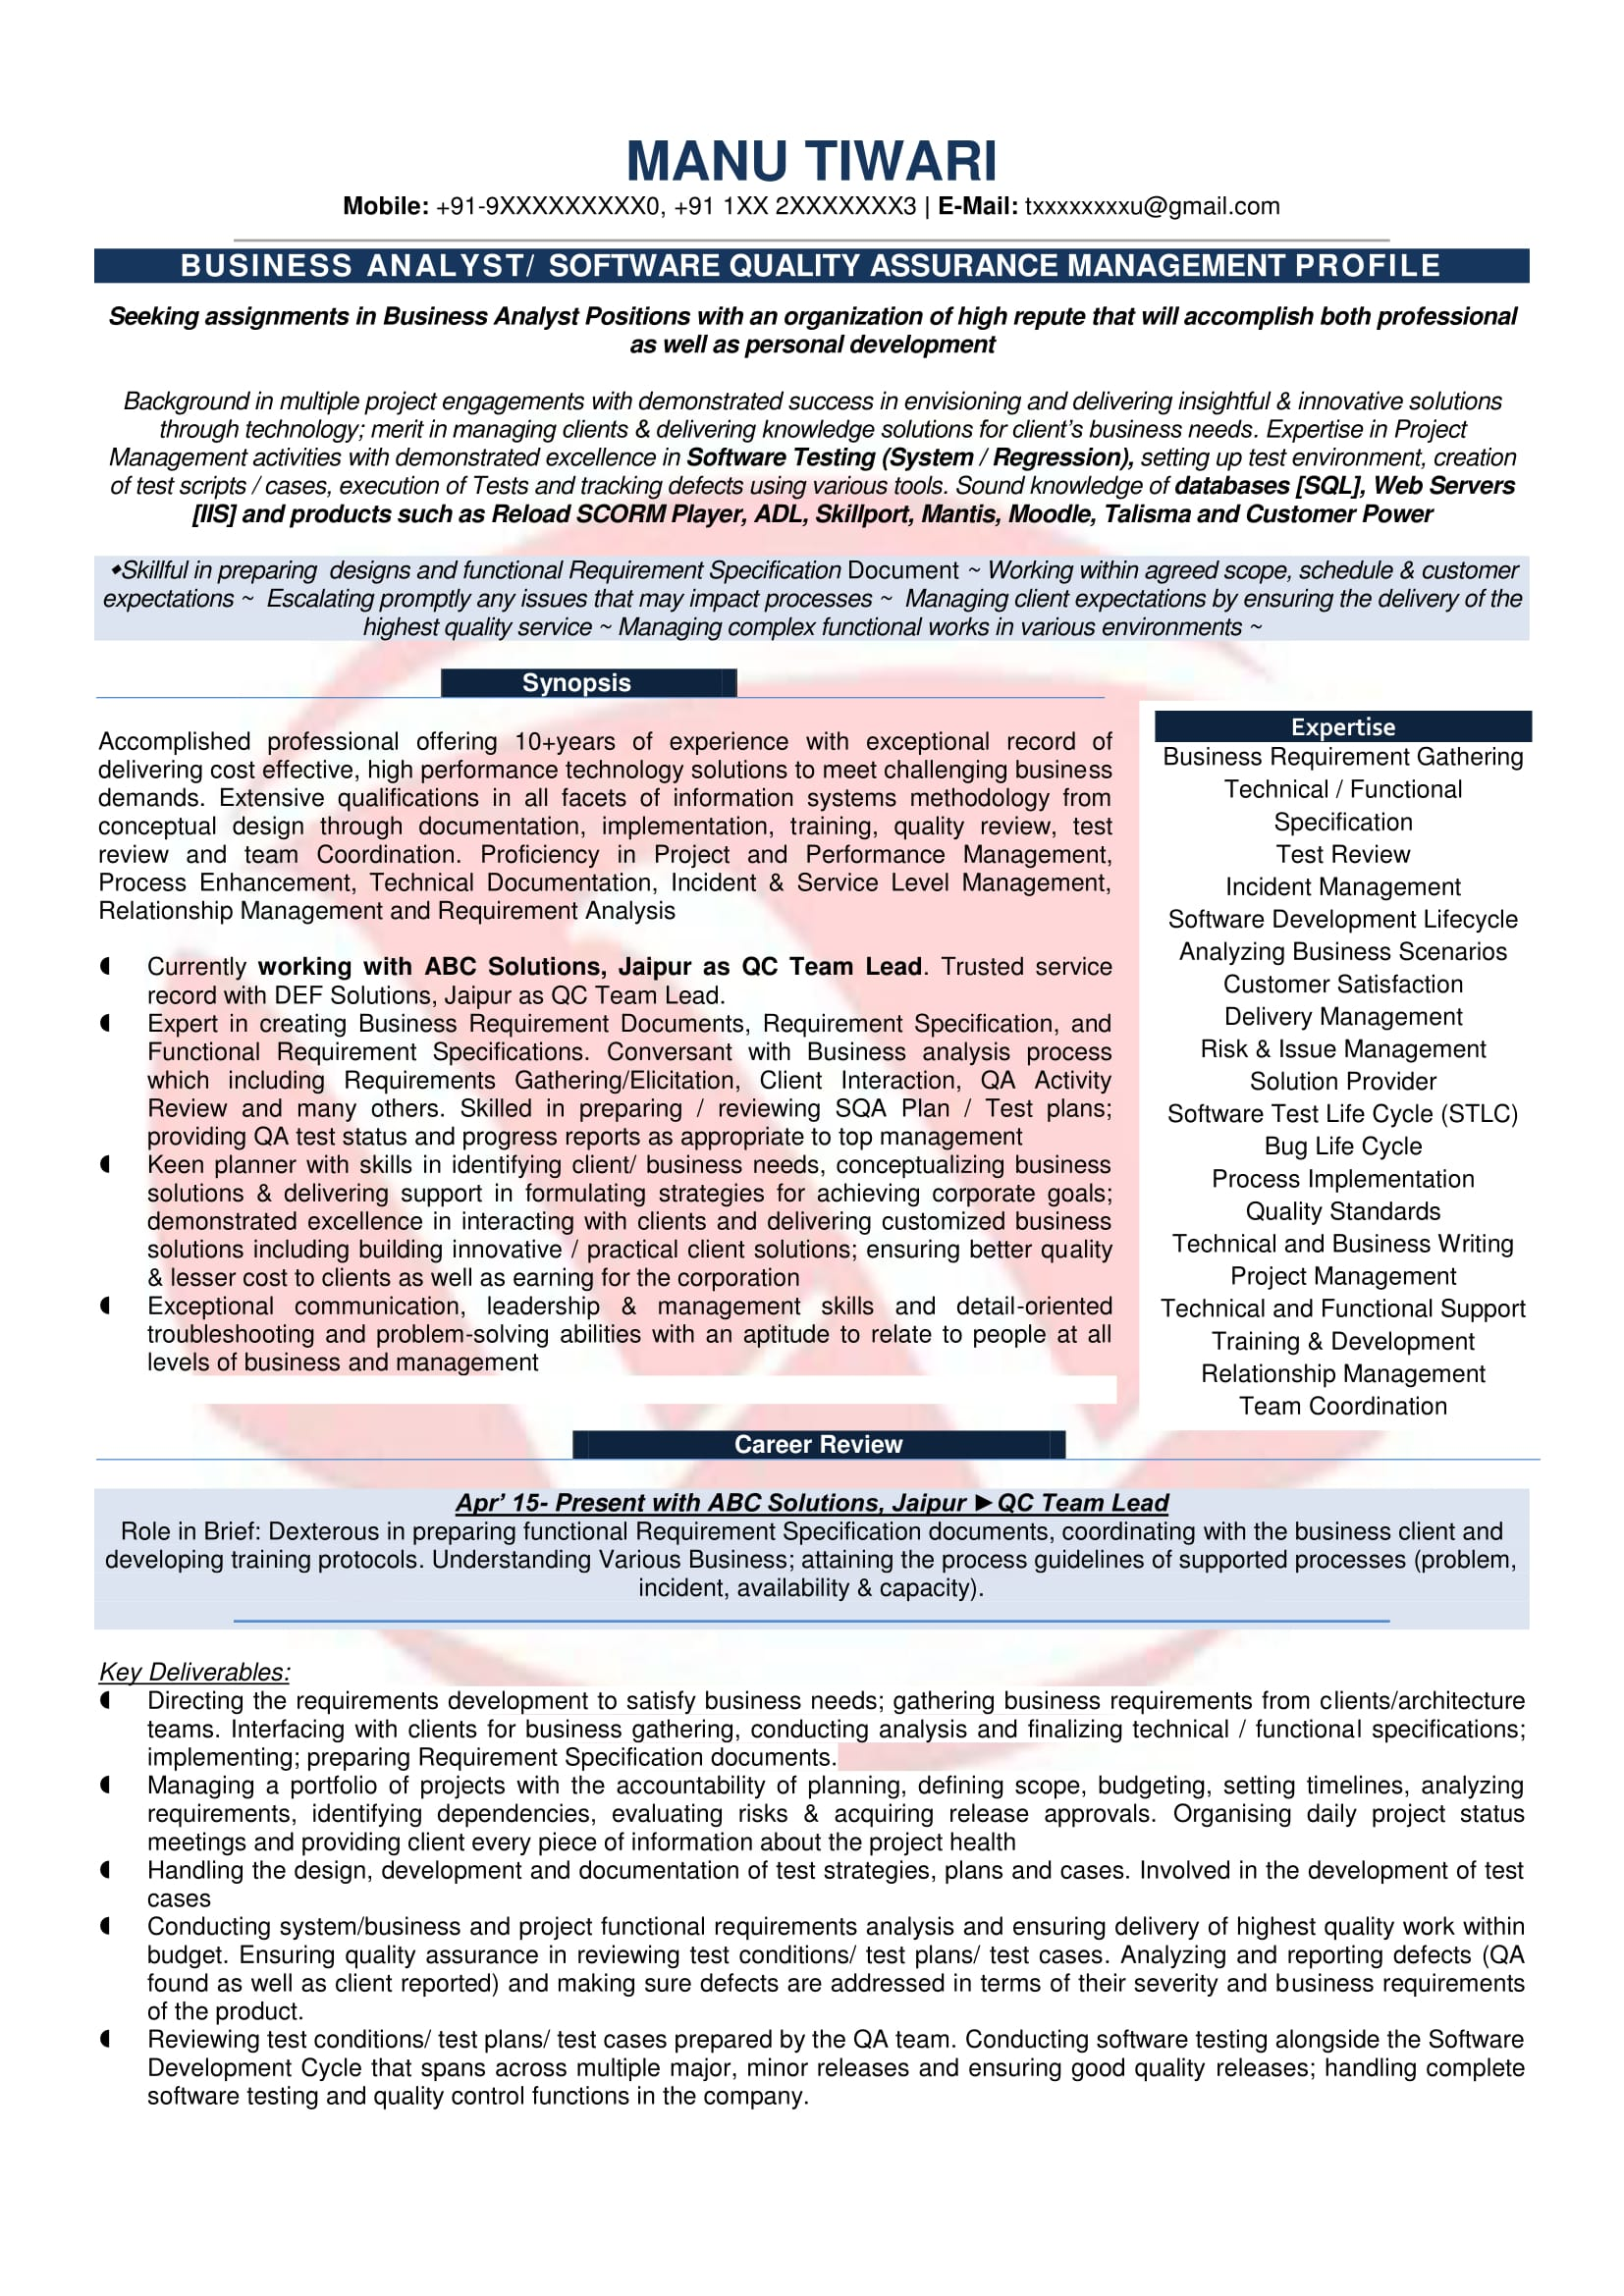 business analyst sample resumes resume format templates information technology stna cover Resume Information Technology Business Analyst Resume Sample